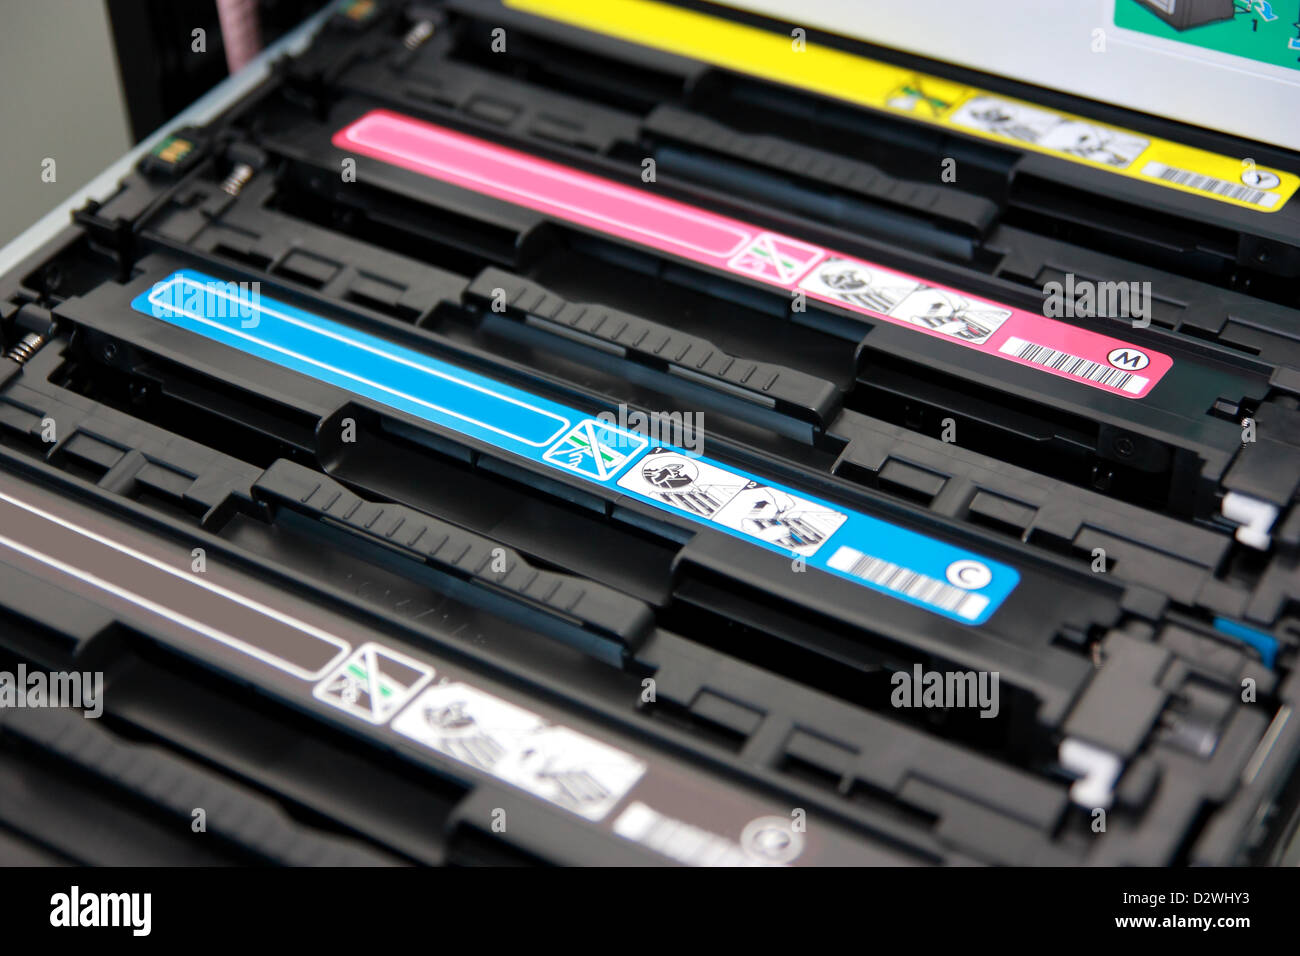 Cartridges of color laser multifunction printer Shallow depth of field. - Stock Image